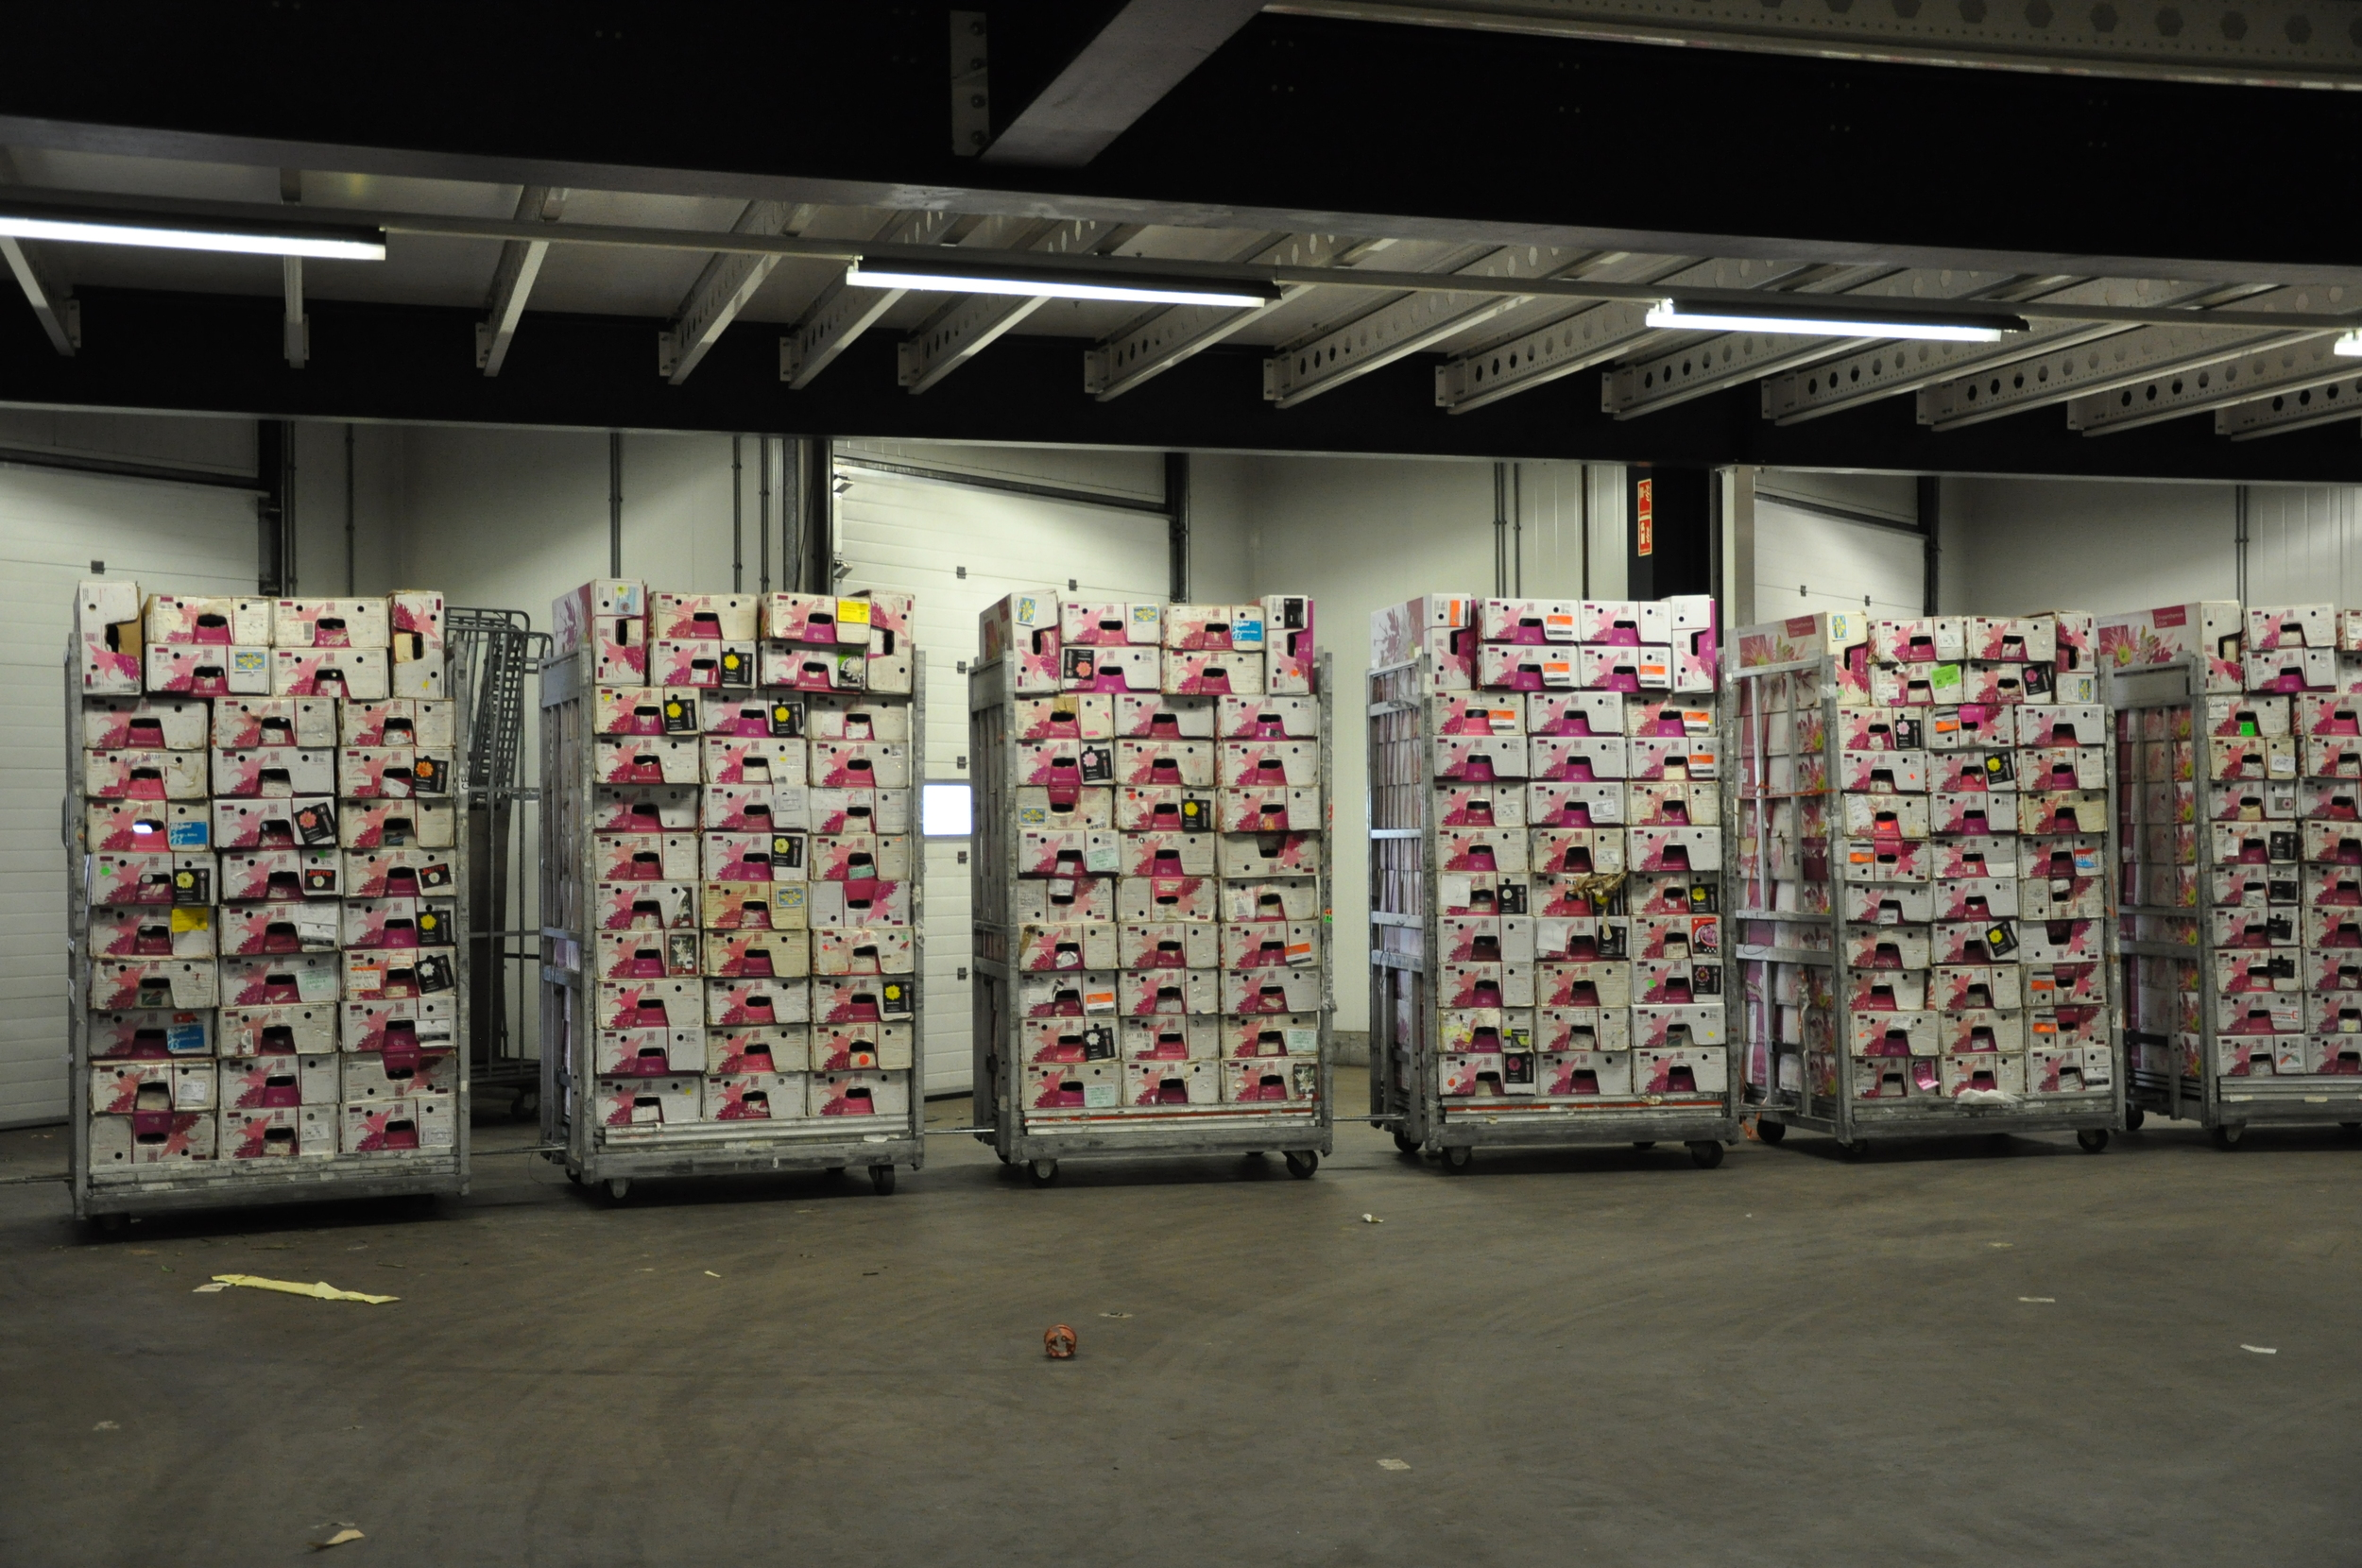 flower boxes stacked on plant trolleys